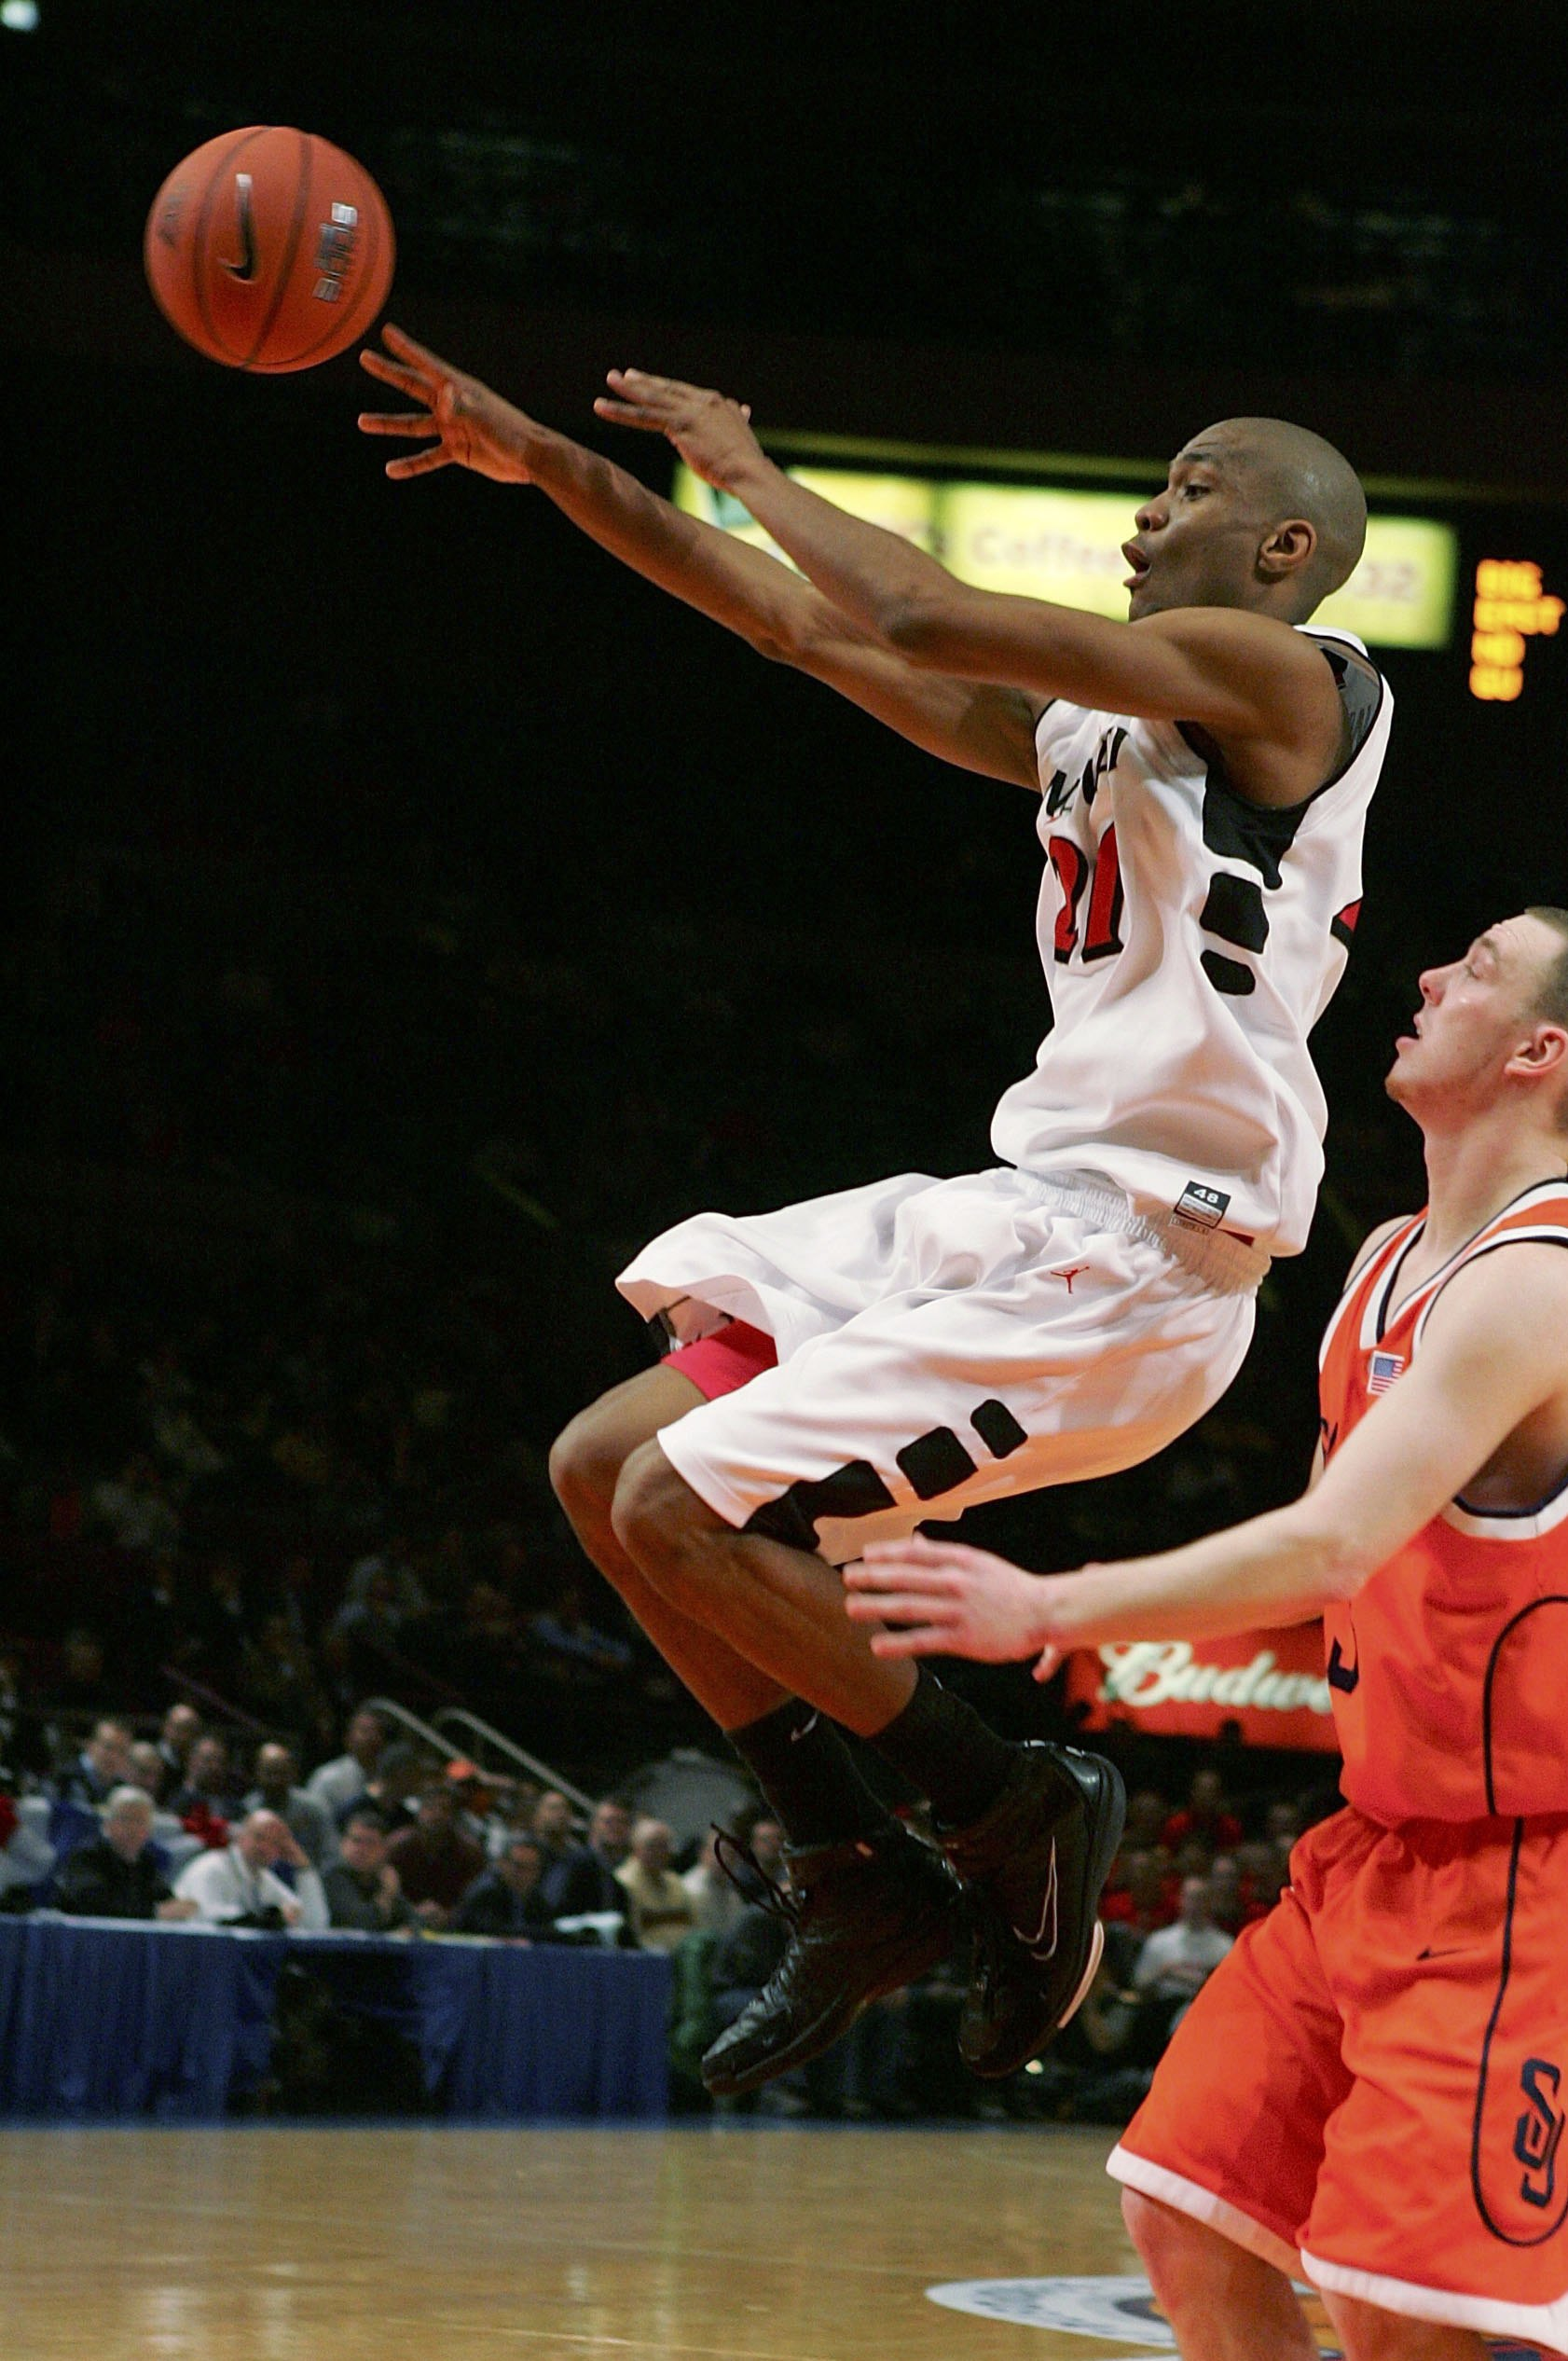 NEW YORK - MARCH 08:  James White #21 of the Cincinnati Bearcats dishes the ball off in front of Gerry McNamara #3 of the Syracuse Orangemen during the first round of the Big East Men's Basketball Championships at Madison Square Garden on March 8, 2006 in